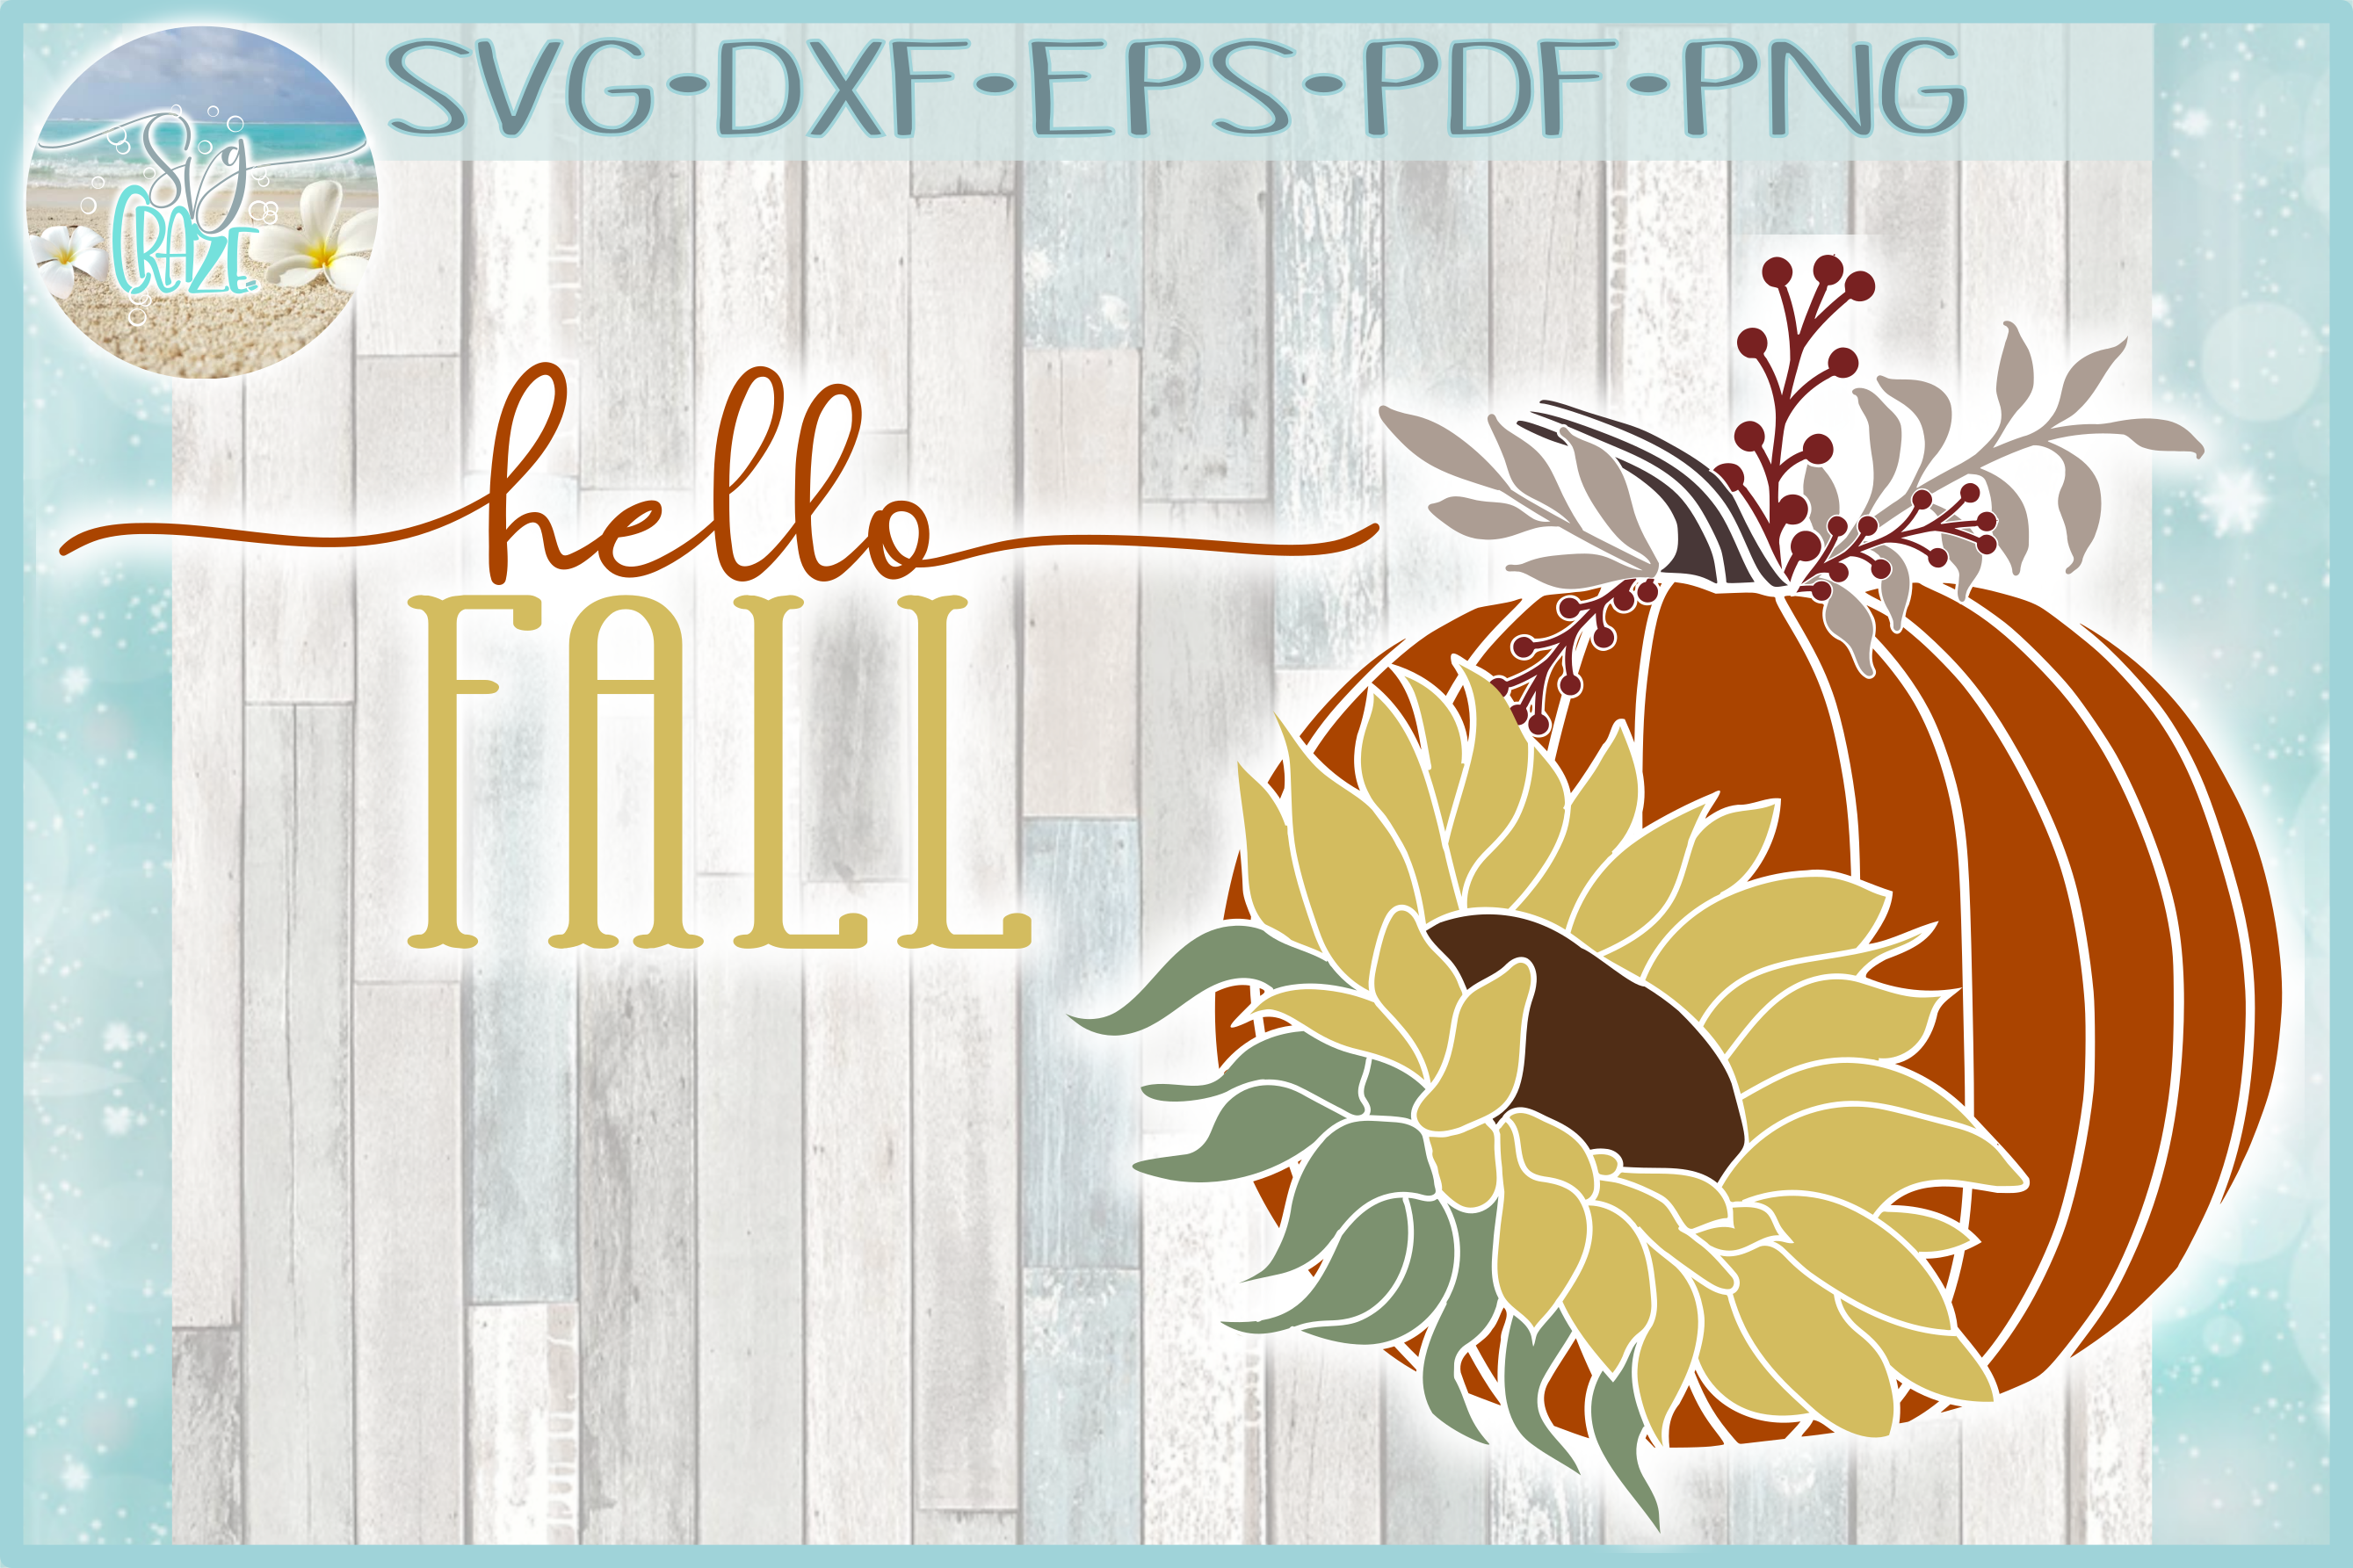 Hello Fall Quote With Pumpkin and Sunflower SVG example image 1